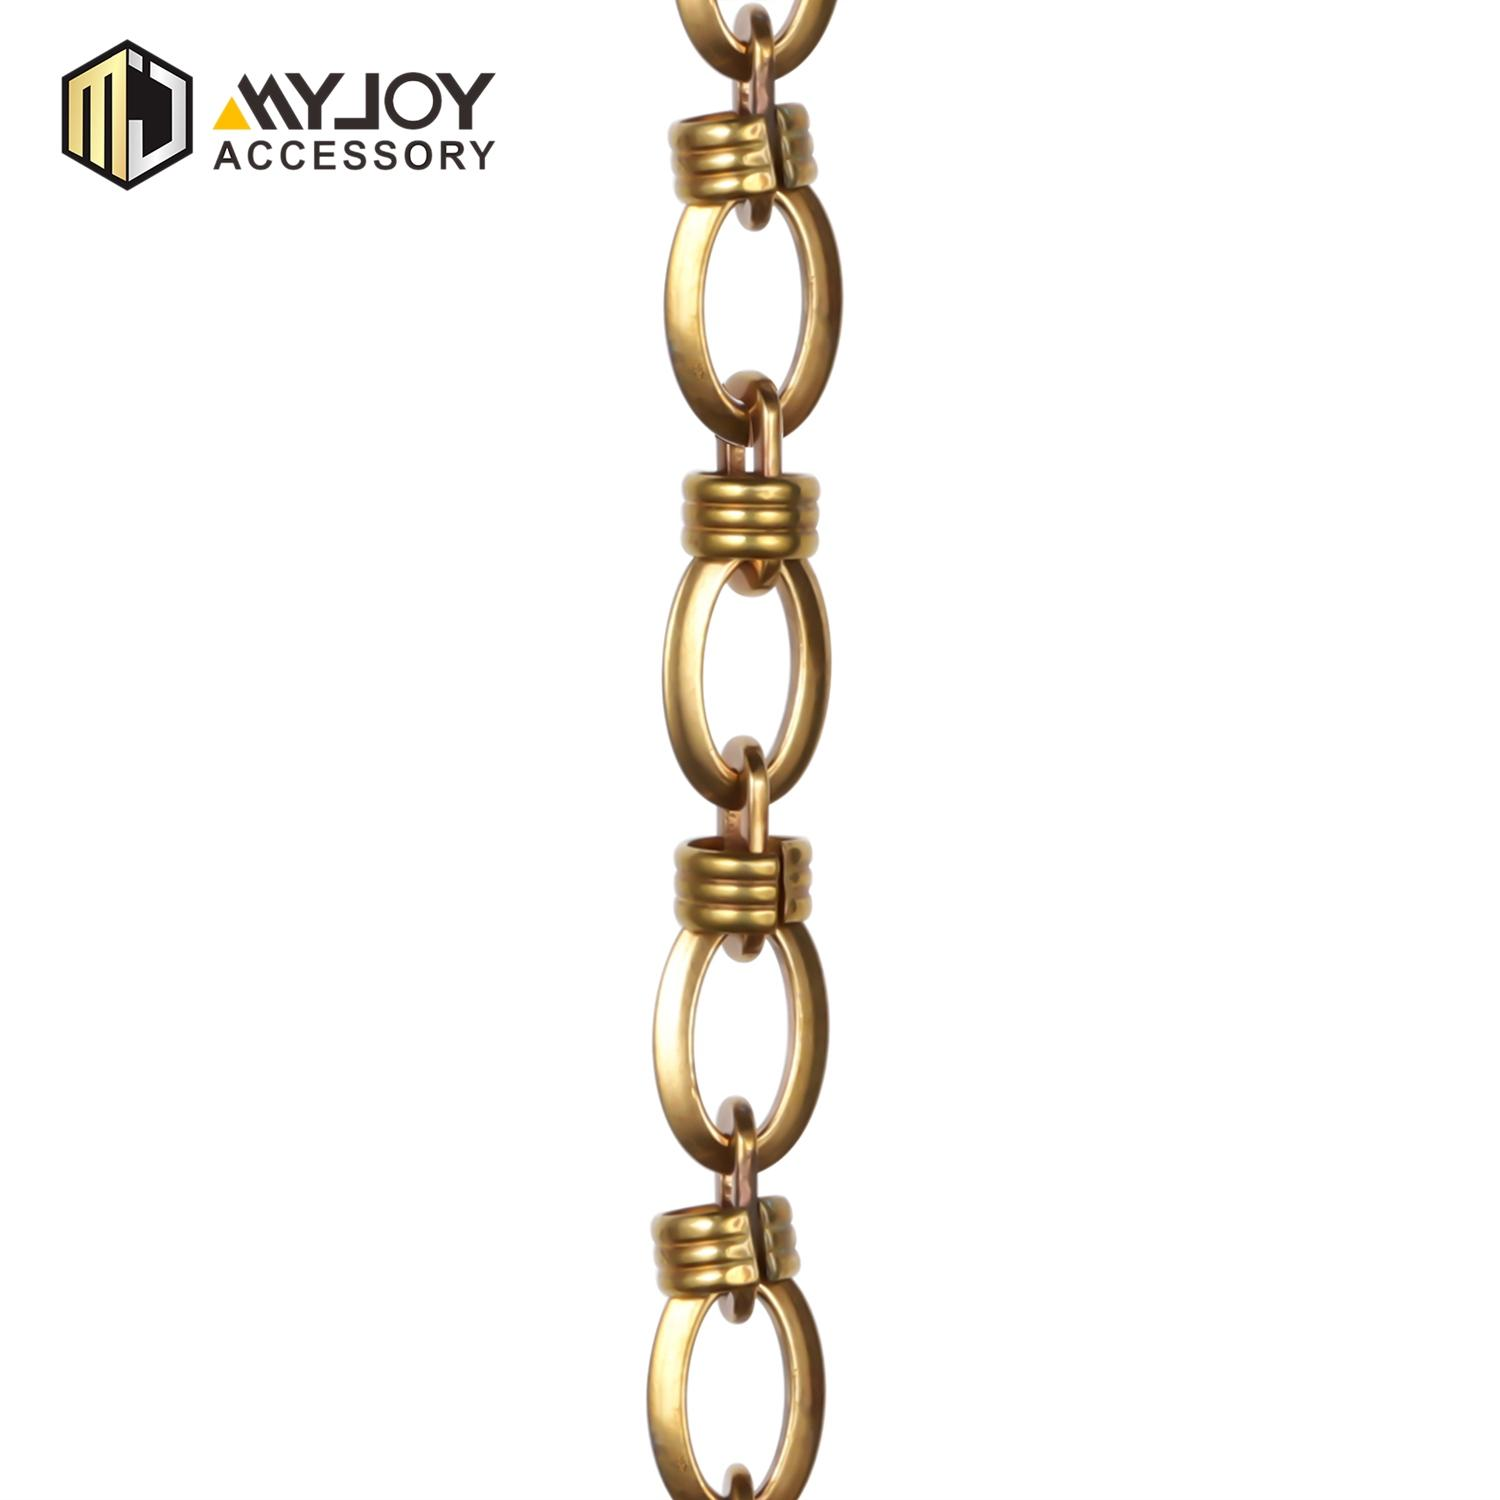 stable bag chain chain suppliers for bags-1